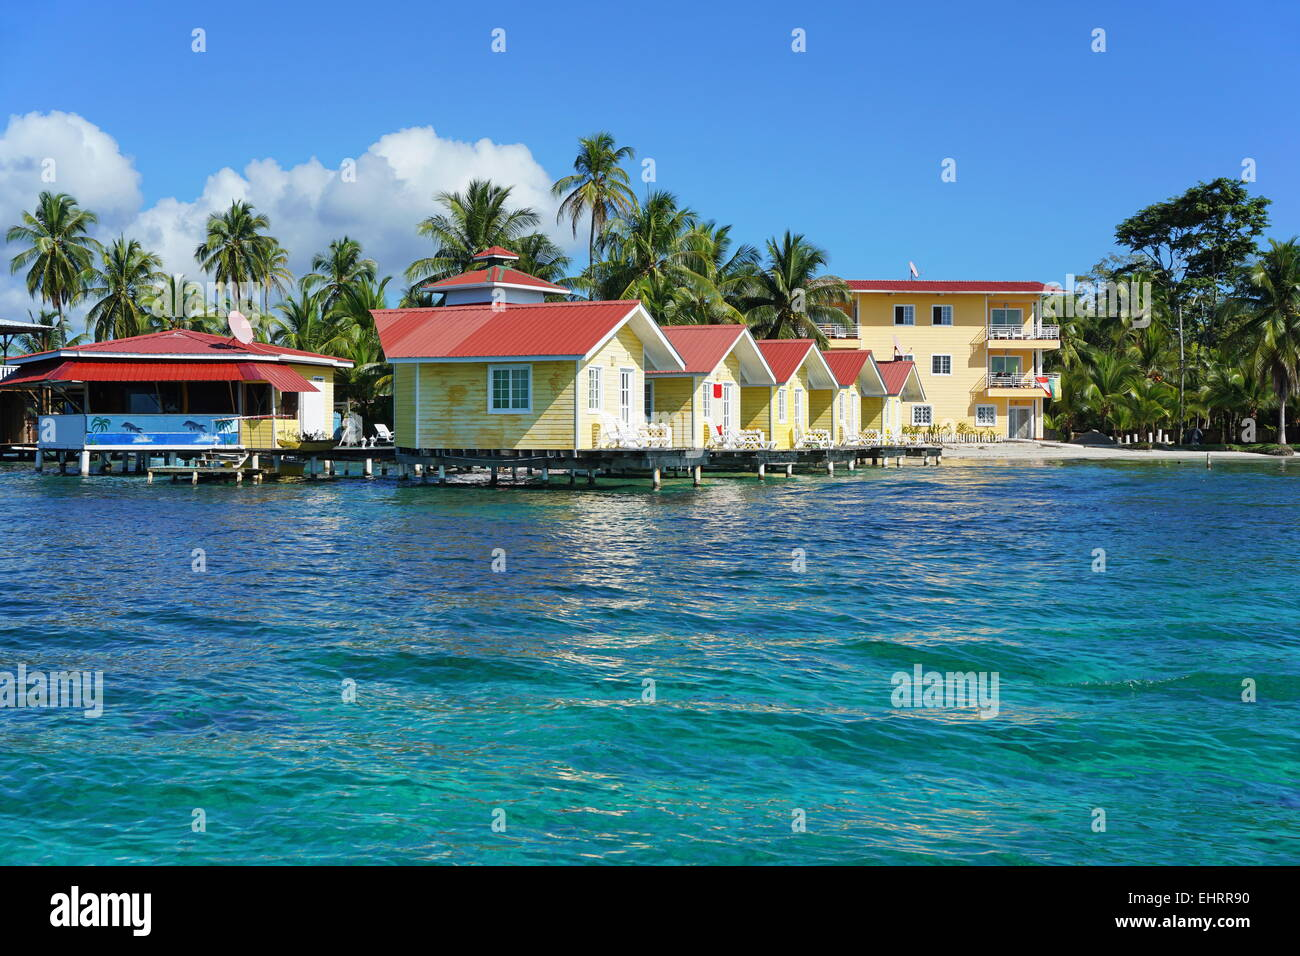 Tropical Resort With Cabin Over Water Of The Caribbean Sea, Carenero  Island, Bocas Del Toro, Panama, Central America